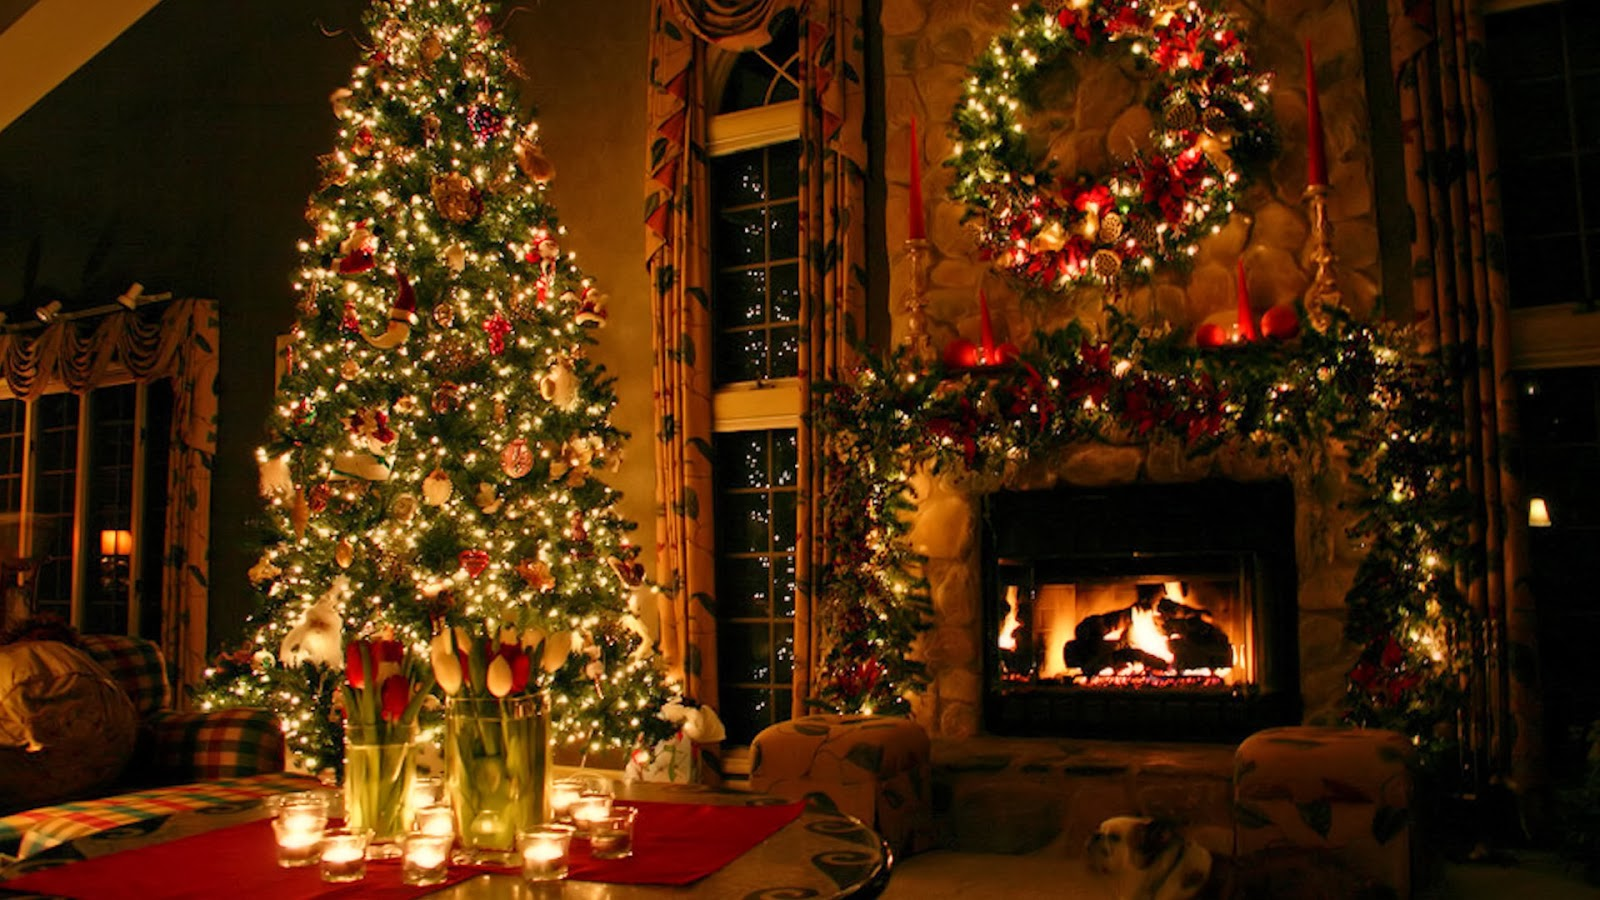 Christmas decorations ideas world top blogger for Home decor xmas